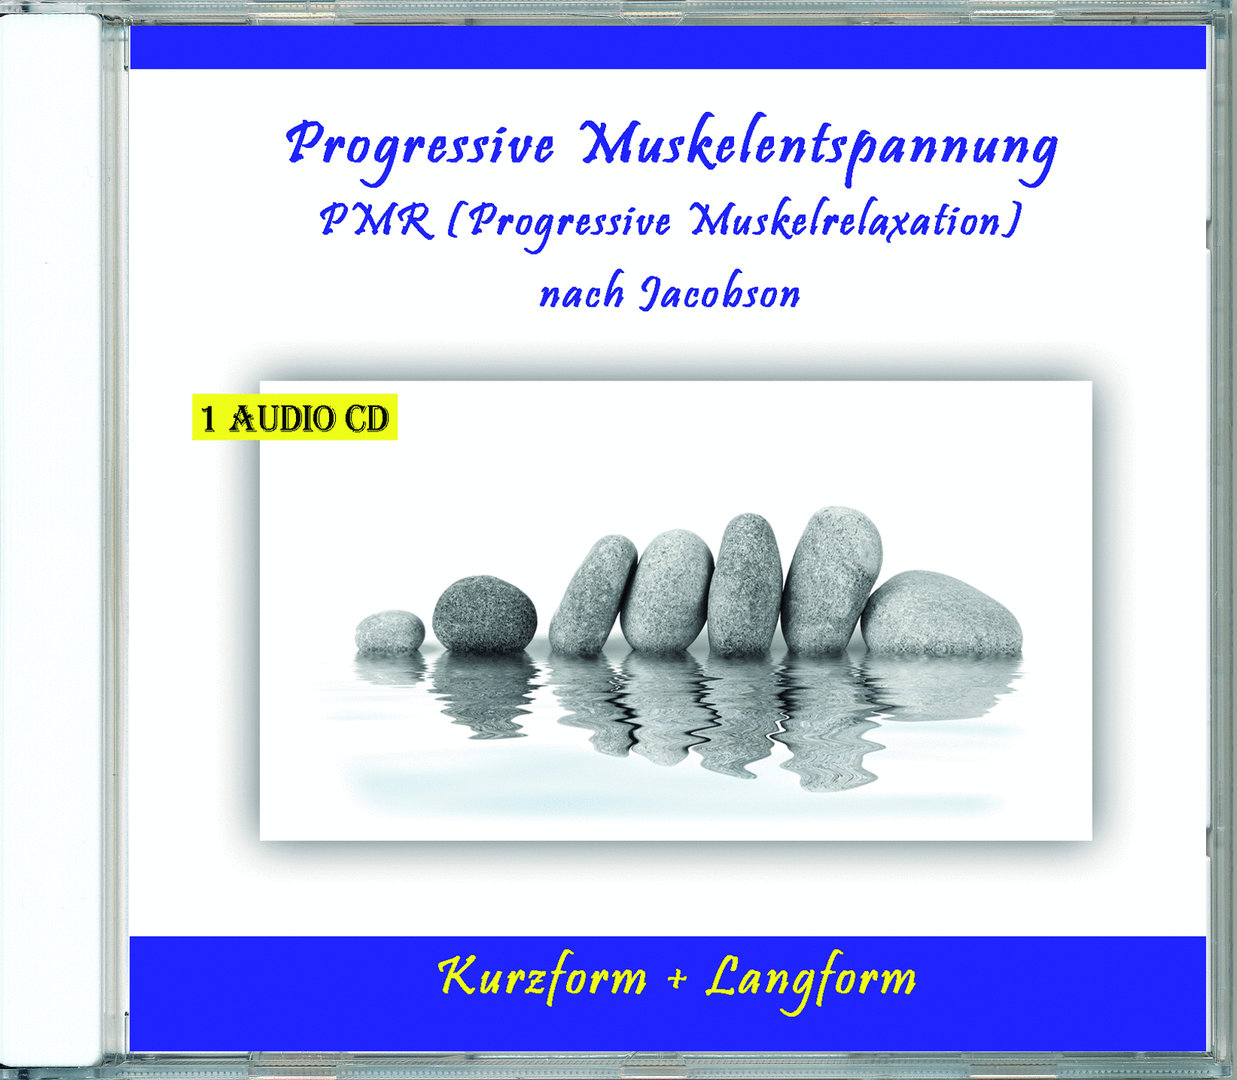 Progressive Muskelentspannung PMR (Progressive Muskelrelaxation) nach Jacobson - Audio-CD